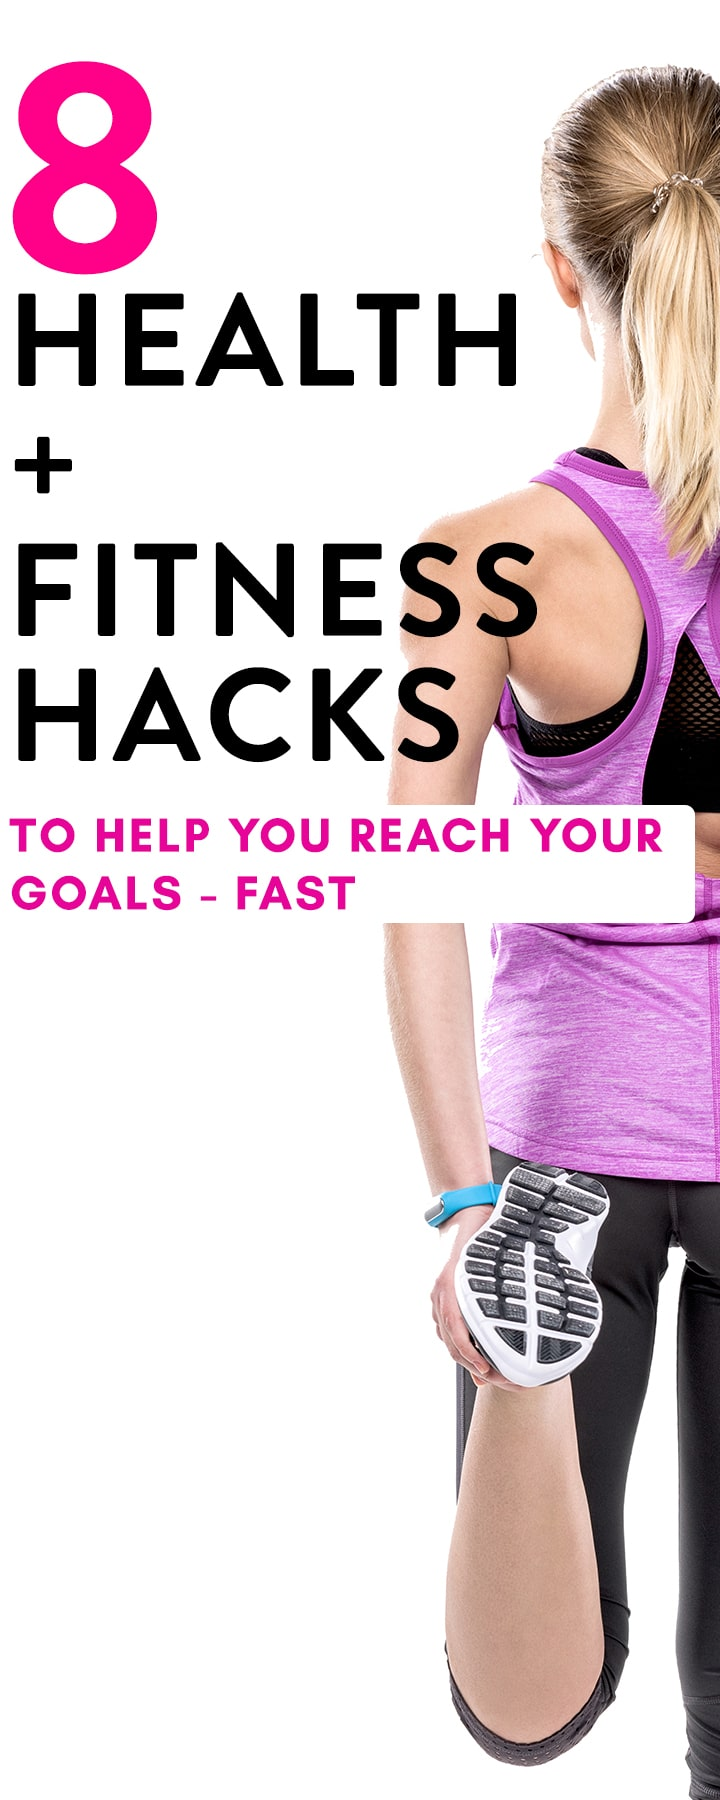 From meal planning to your workouts, here are 8 health and fitness hacks to give you a boost so you can reach your health goals fast! Healthy hacks are not only a great motivation but they bring the results whether it's gaining strength or losing weight! #ad #healthyhacks #healthhacks #weightloss #losingweight #fitness #health